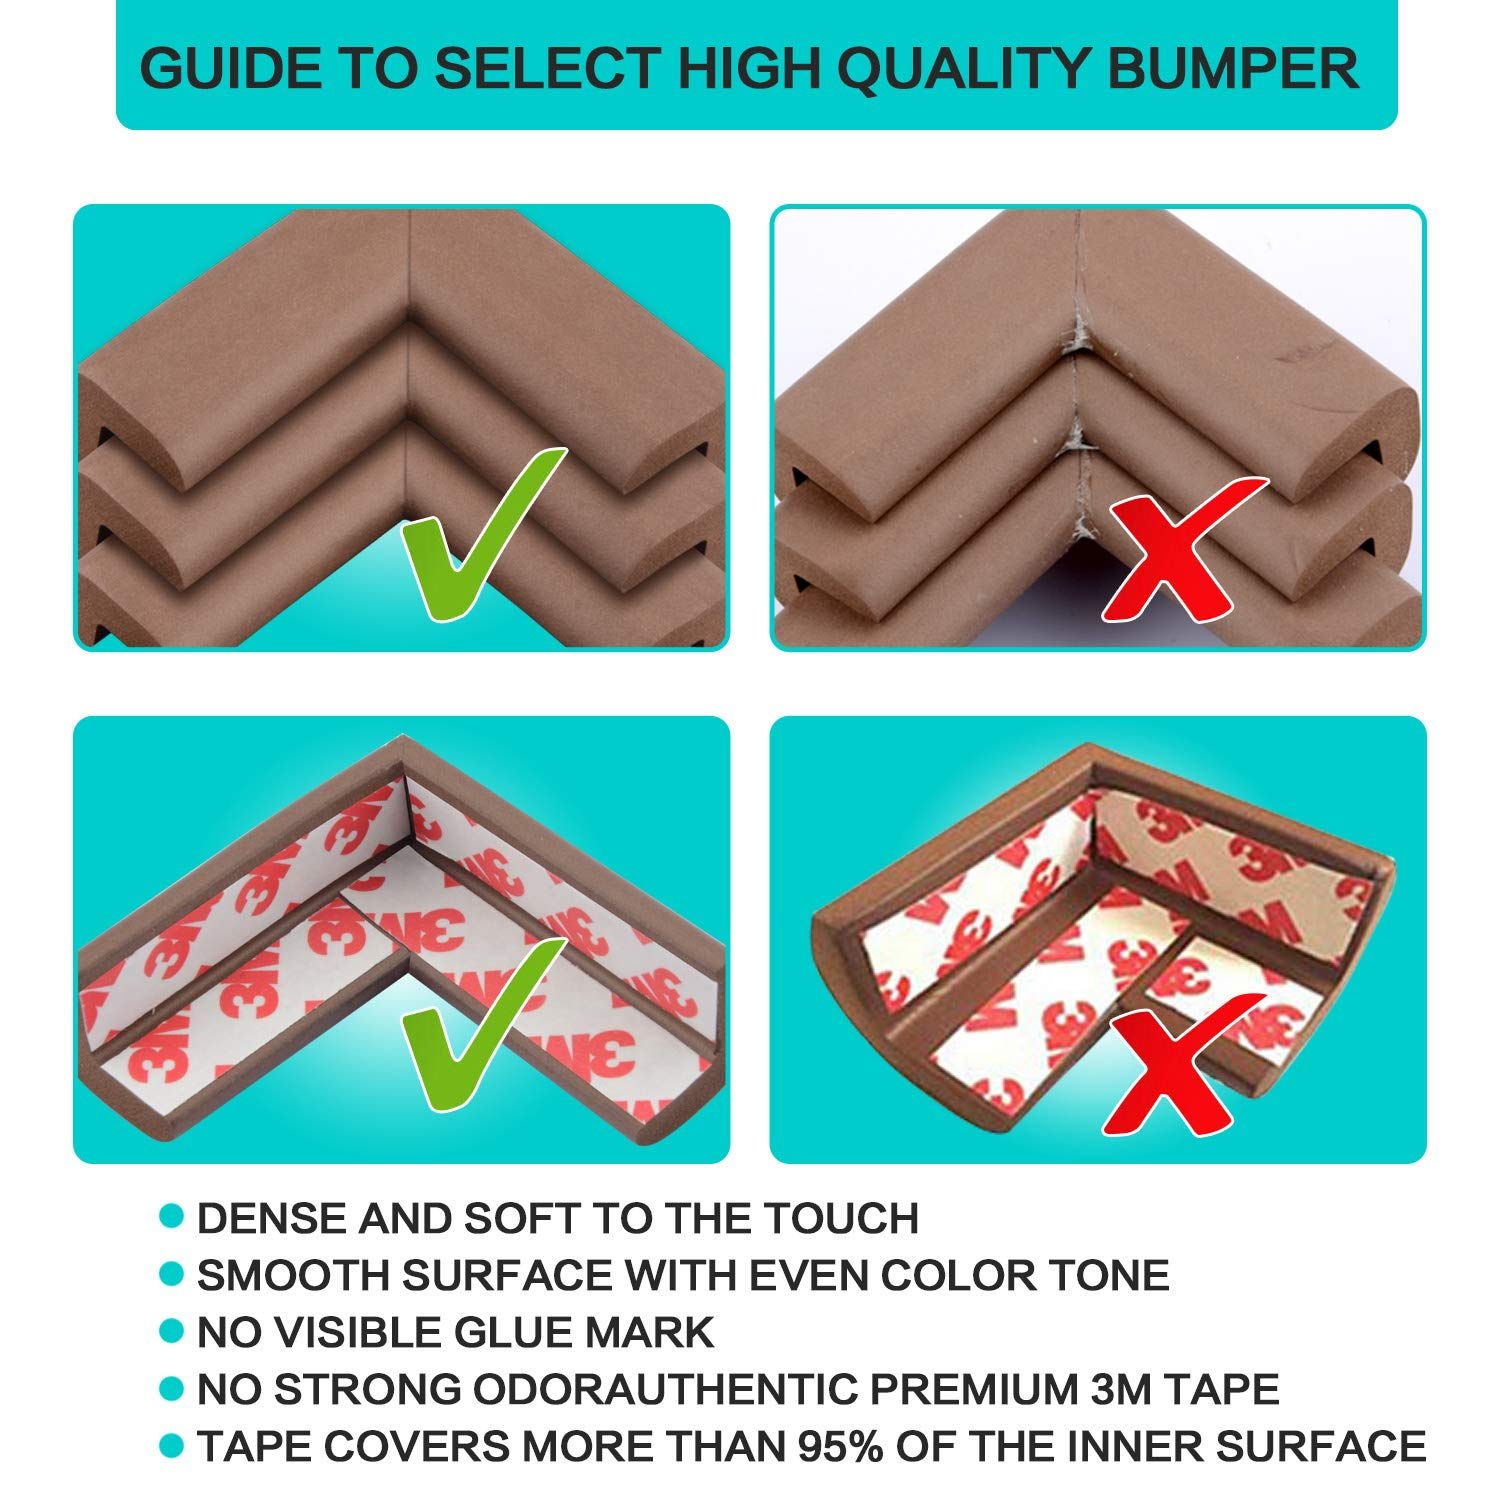 Baby Proofing Edge and Corner Guards,NBR Rubber Set for Safe Edge & Corner Guards Cushion,23Ft [19.68Ft Edge + 8 Corner],Child Safety Furniture Bumper(Brown) by COCOLi (Image #4)